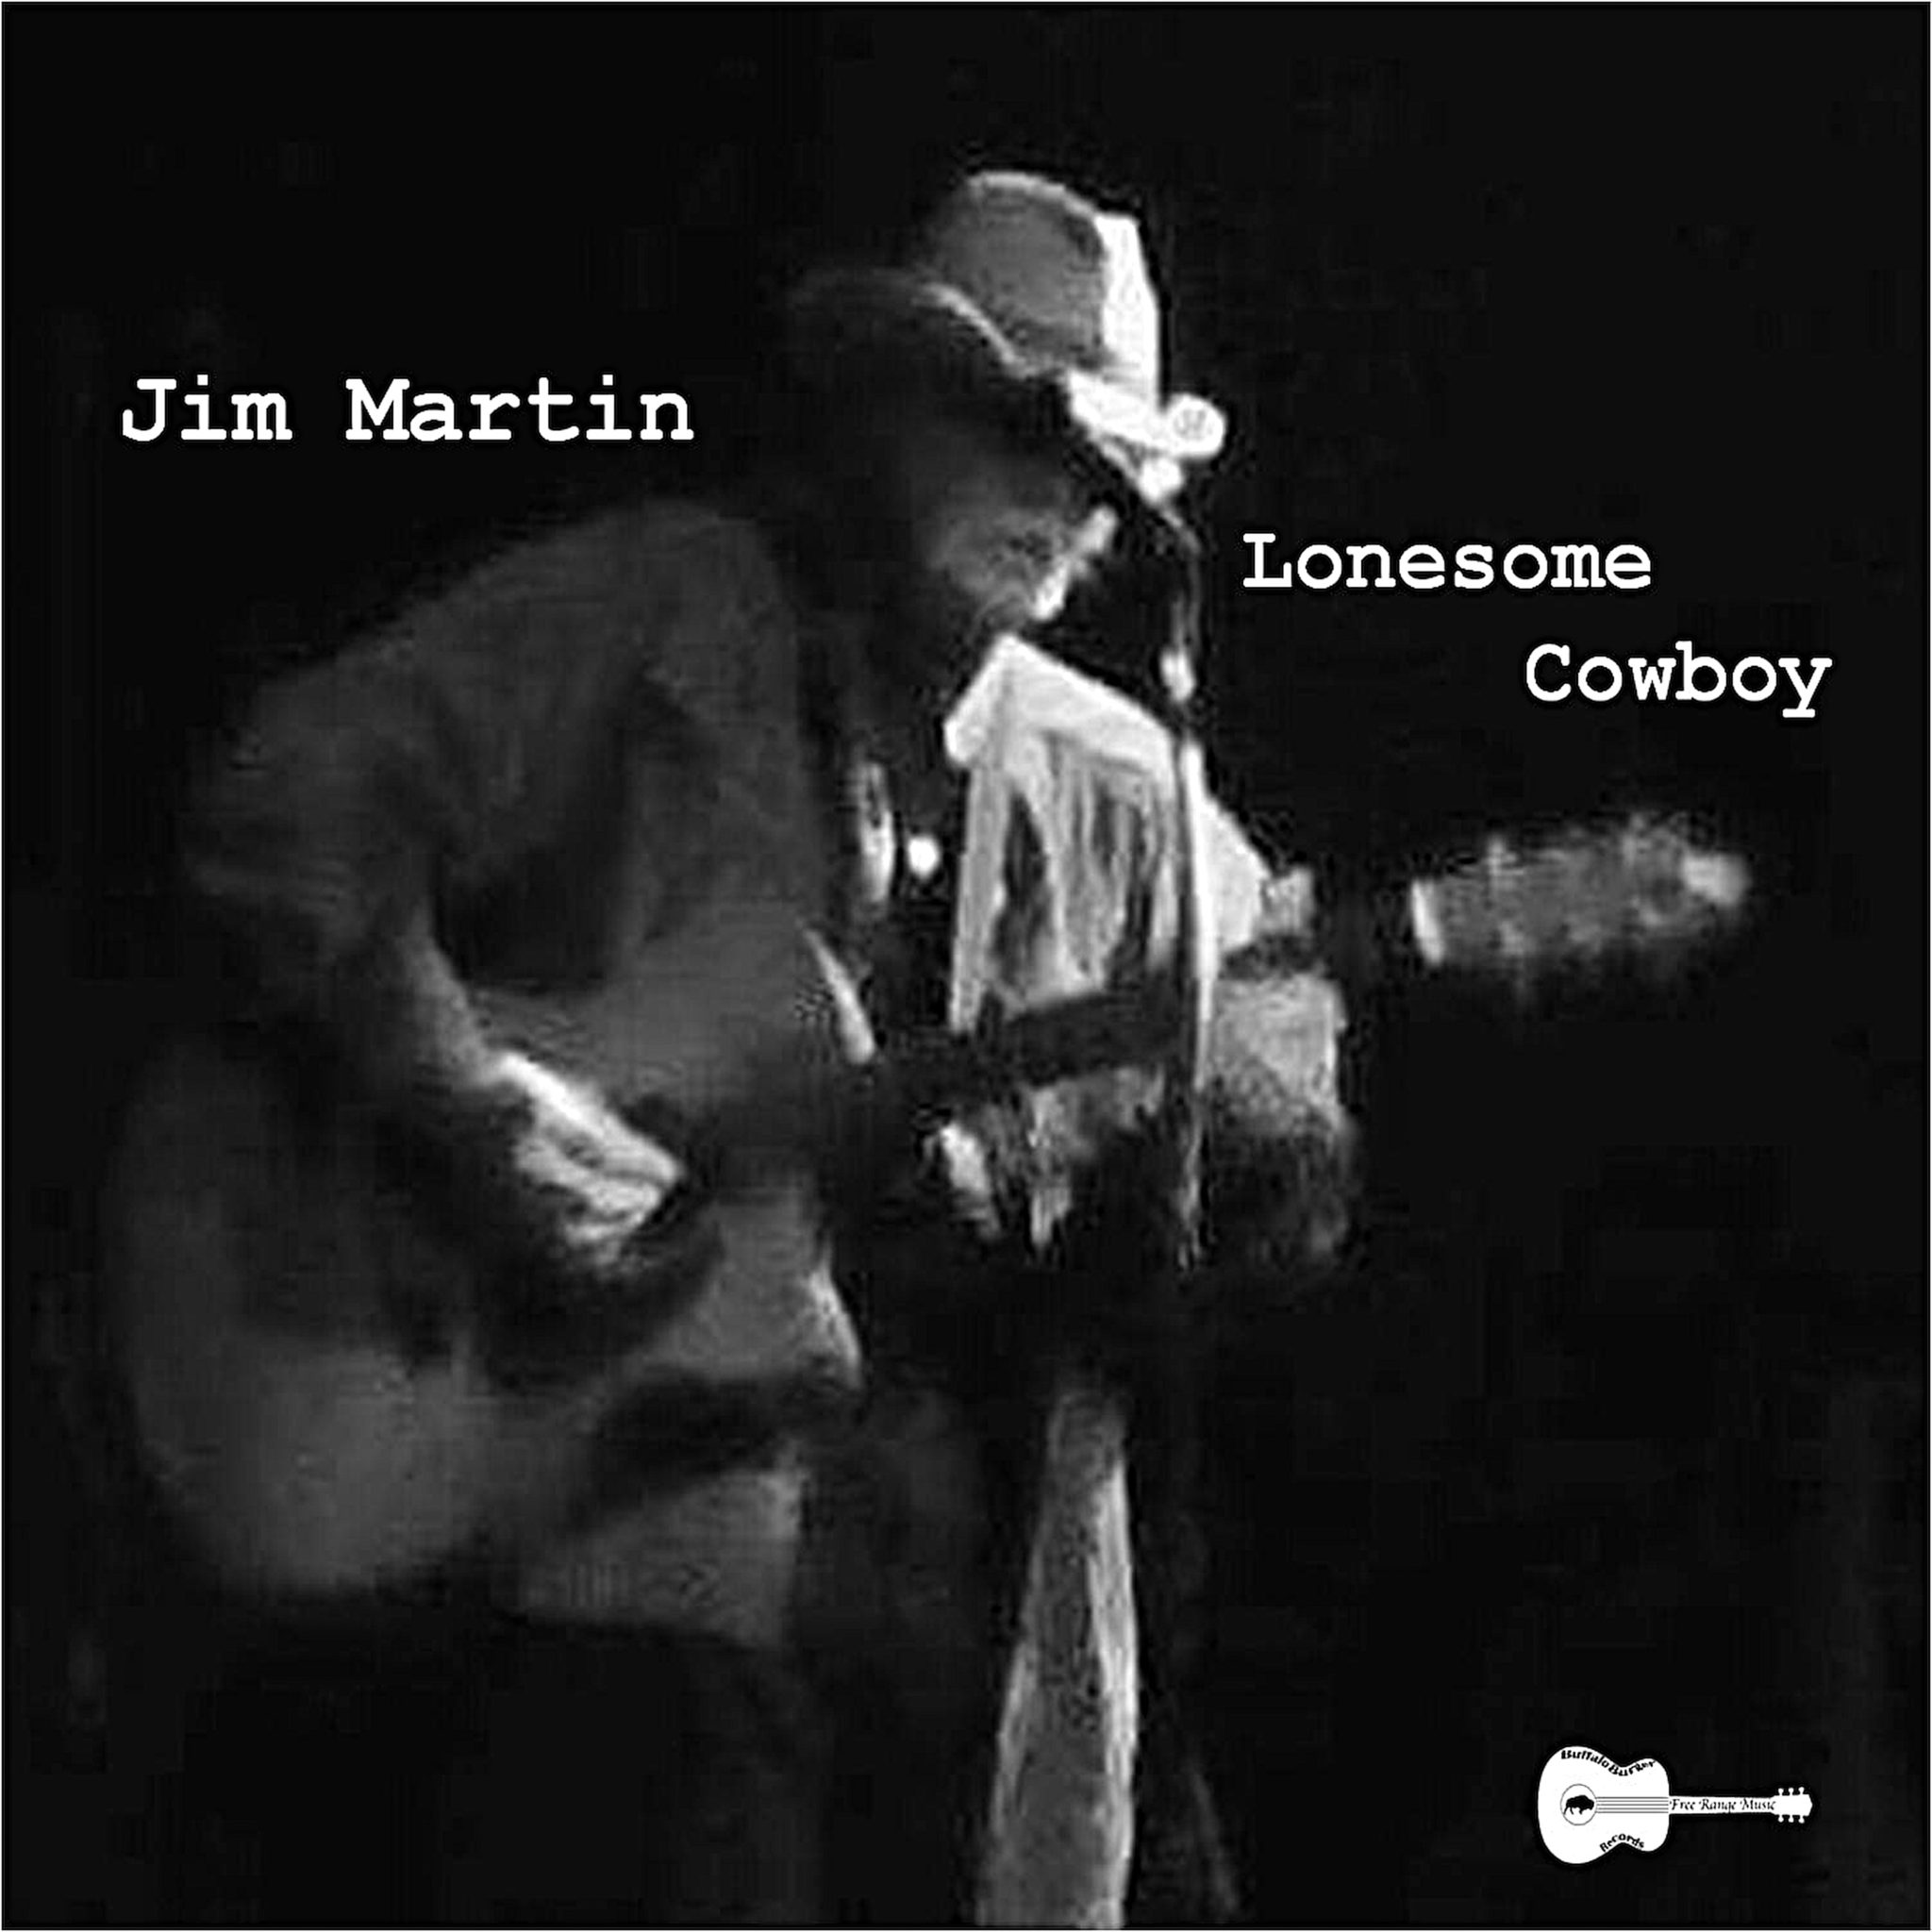 Jim Martin | Lonesome Cowboy Album Released